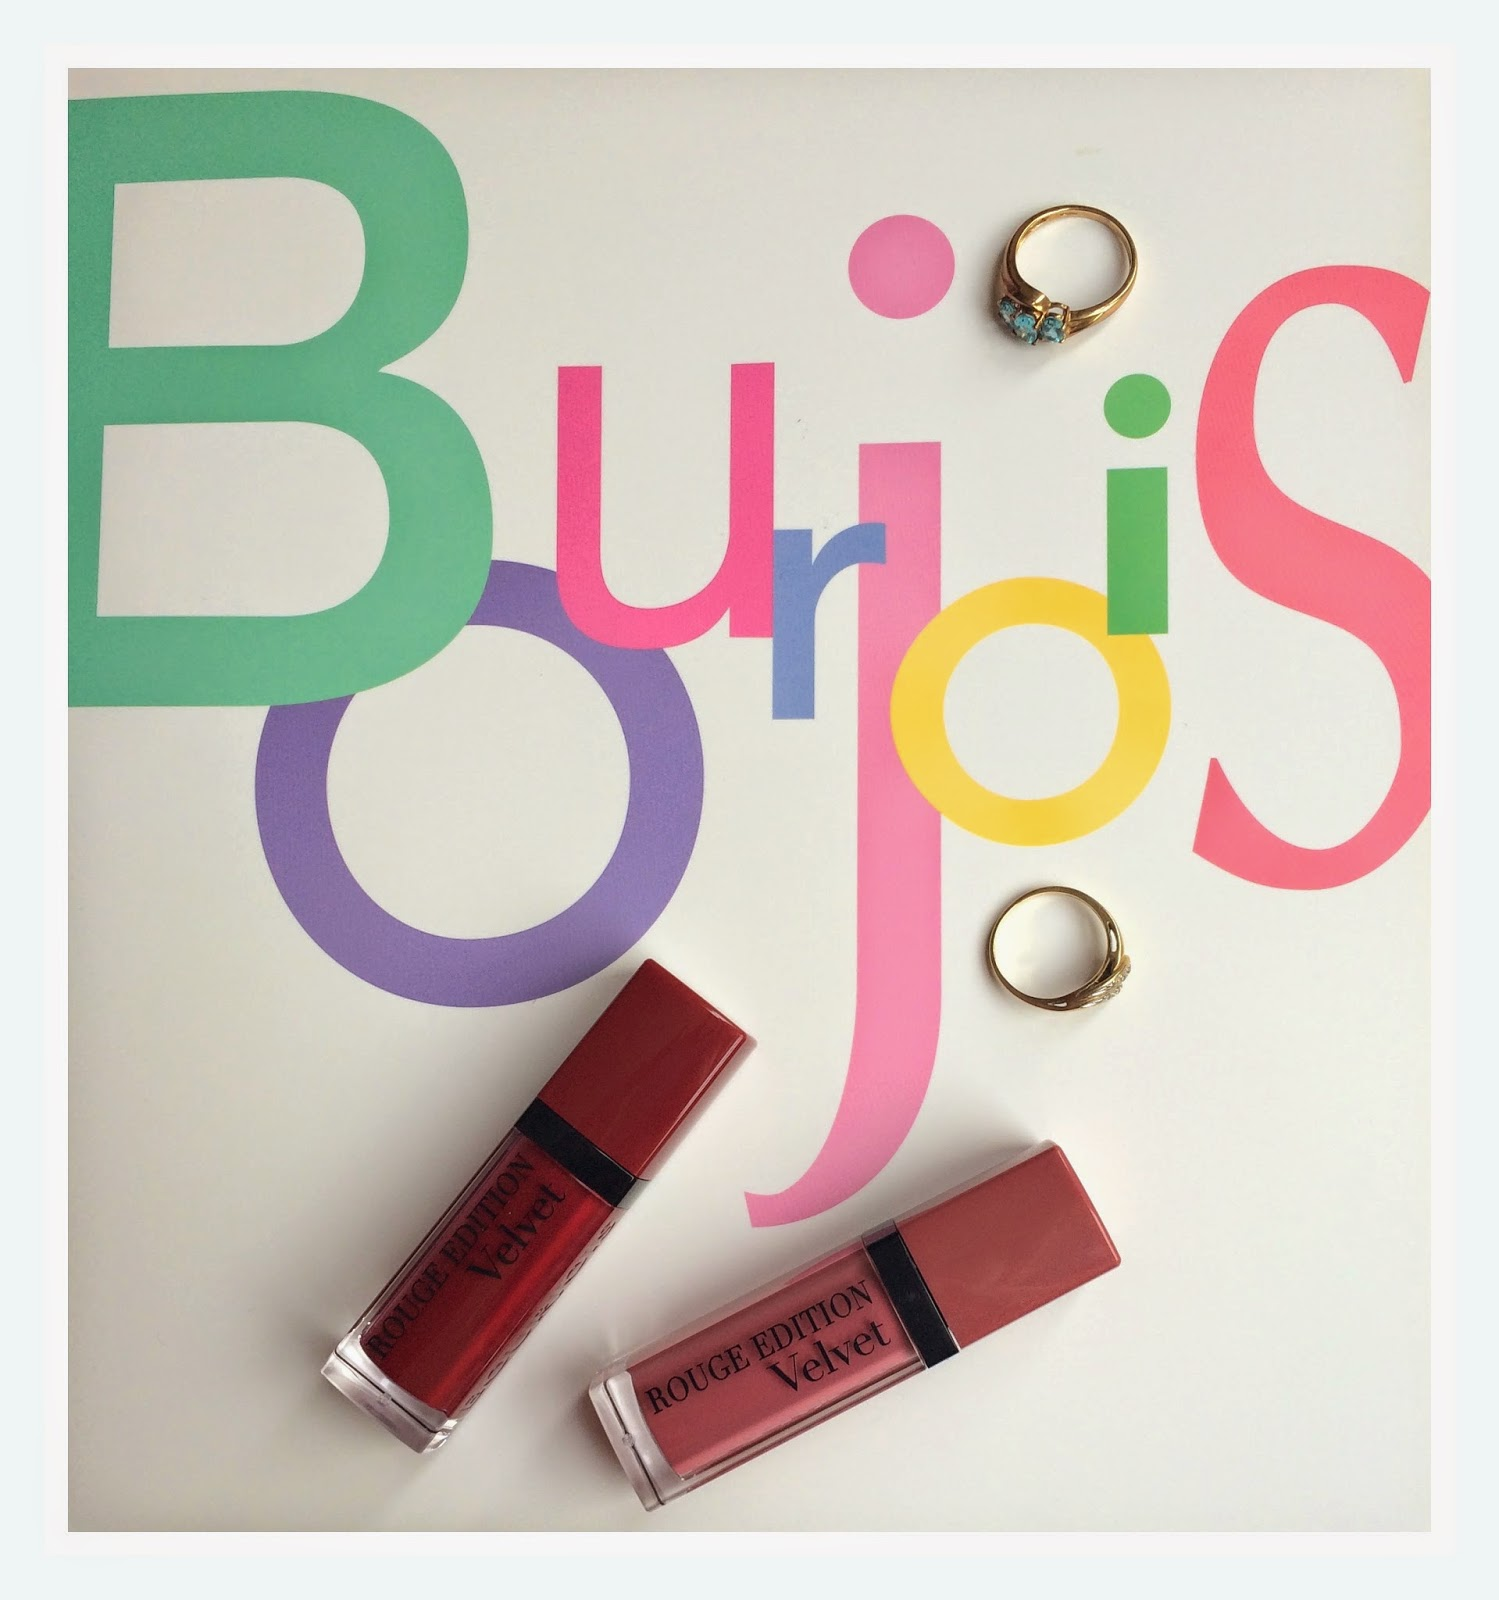 bourjois-rouge-edition-velvet-new-shades-2014